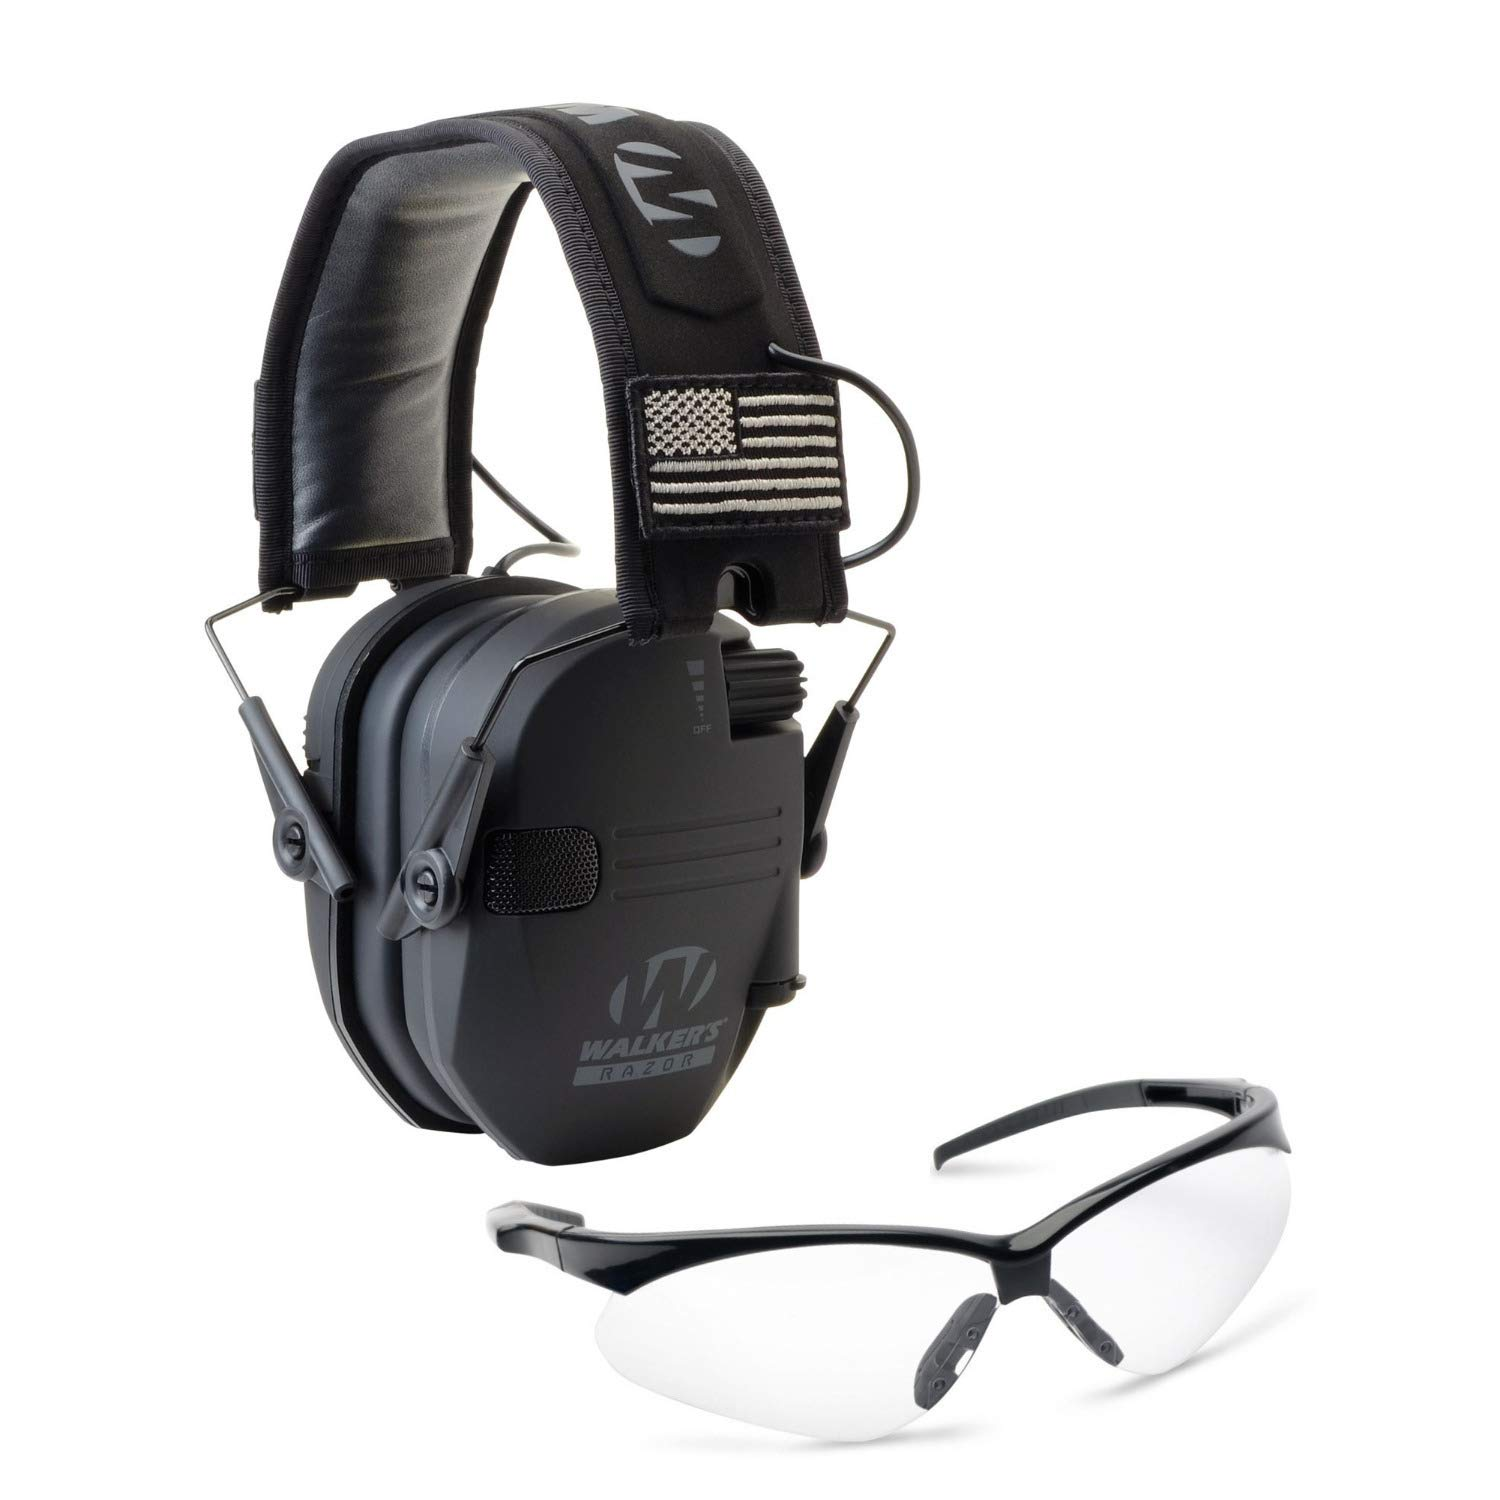 Walkers Razor Slim Electronic Hearing Protection Muffs with Sound Amplification and Suppression and Shooting Glasses Kit, Black Patriot by Walkers (Image #1)